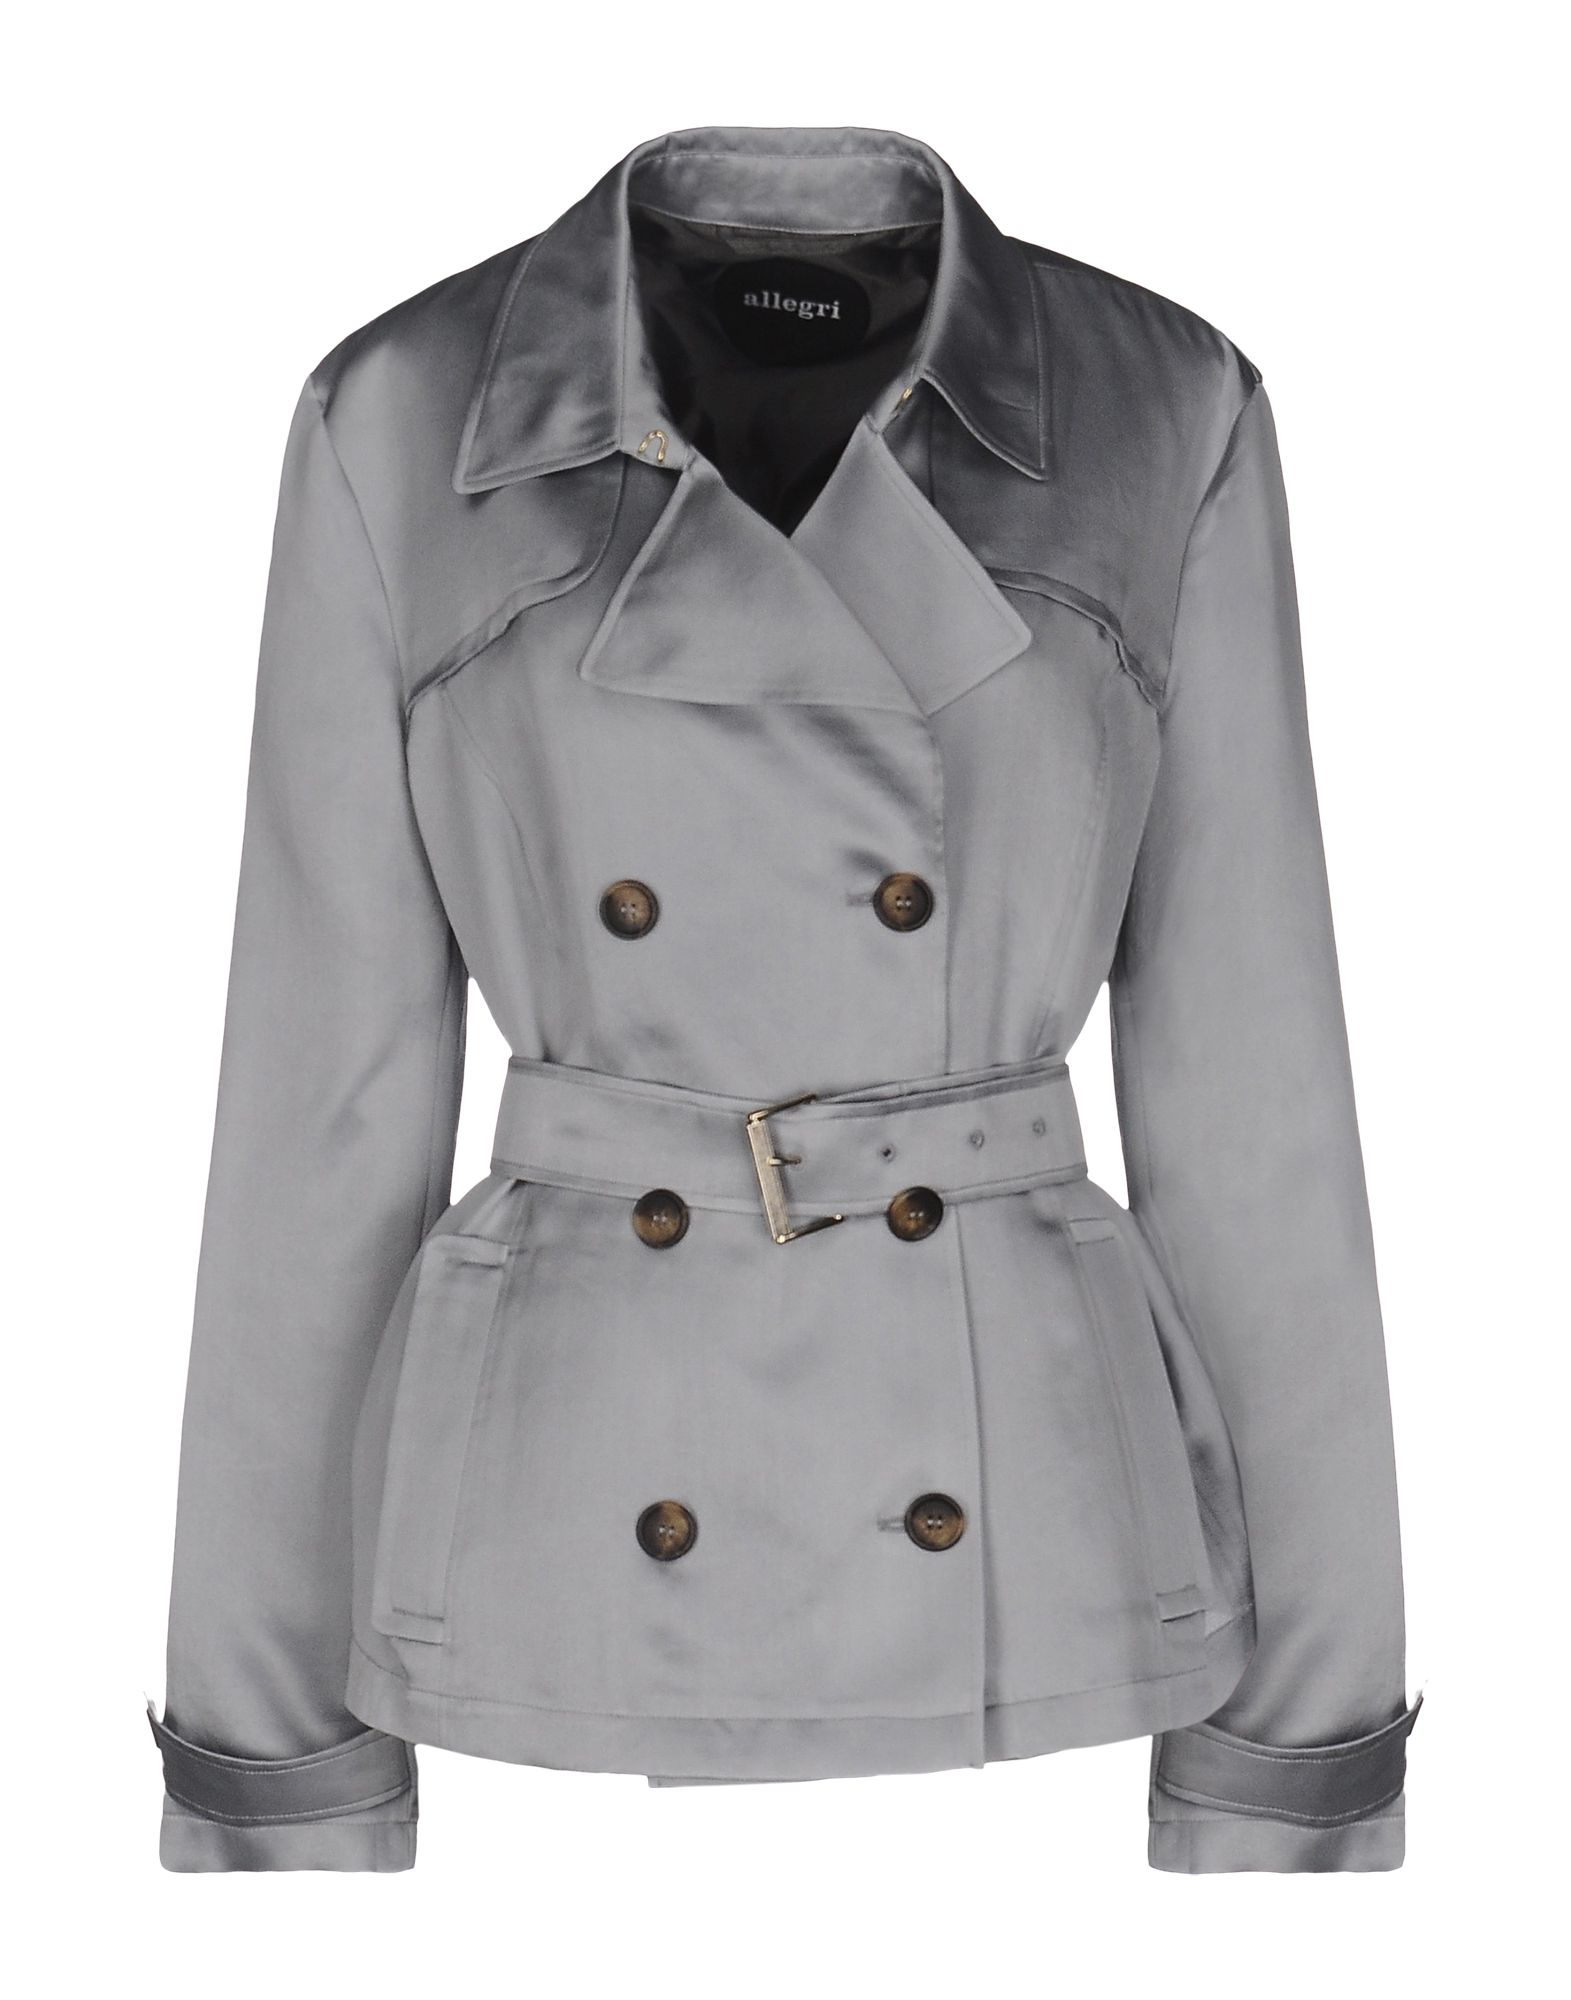 ALLEGRI Belted Coats in Light Grey